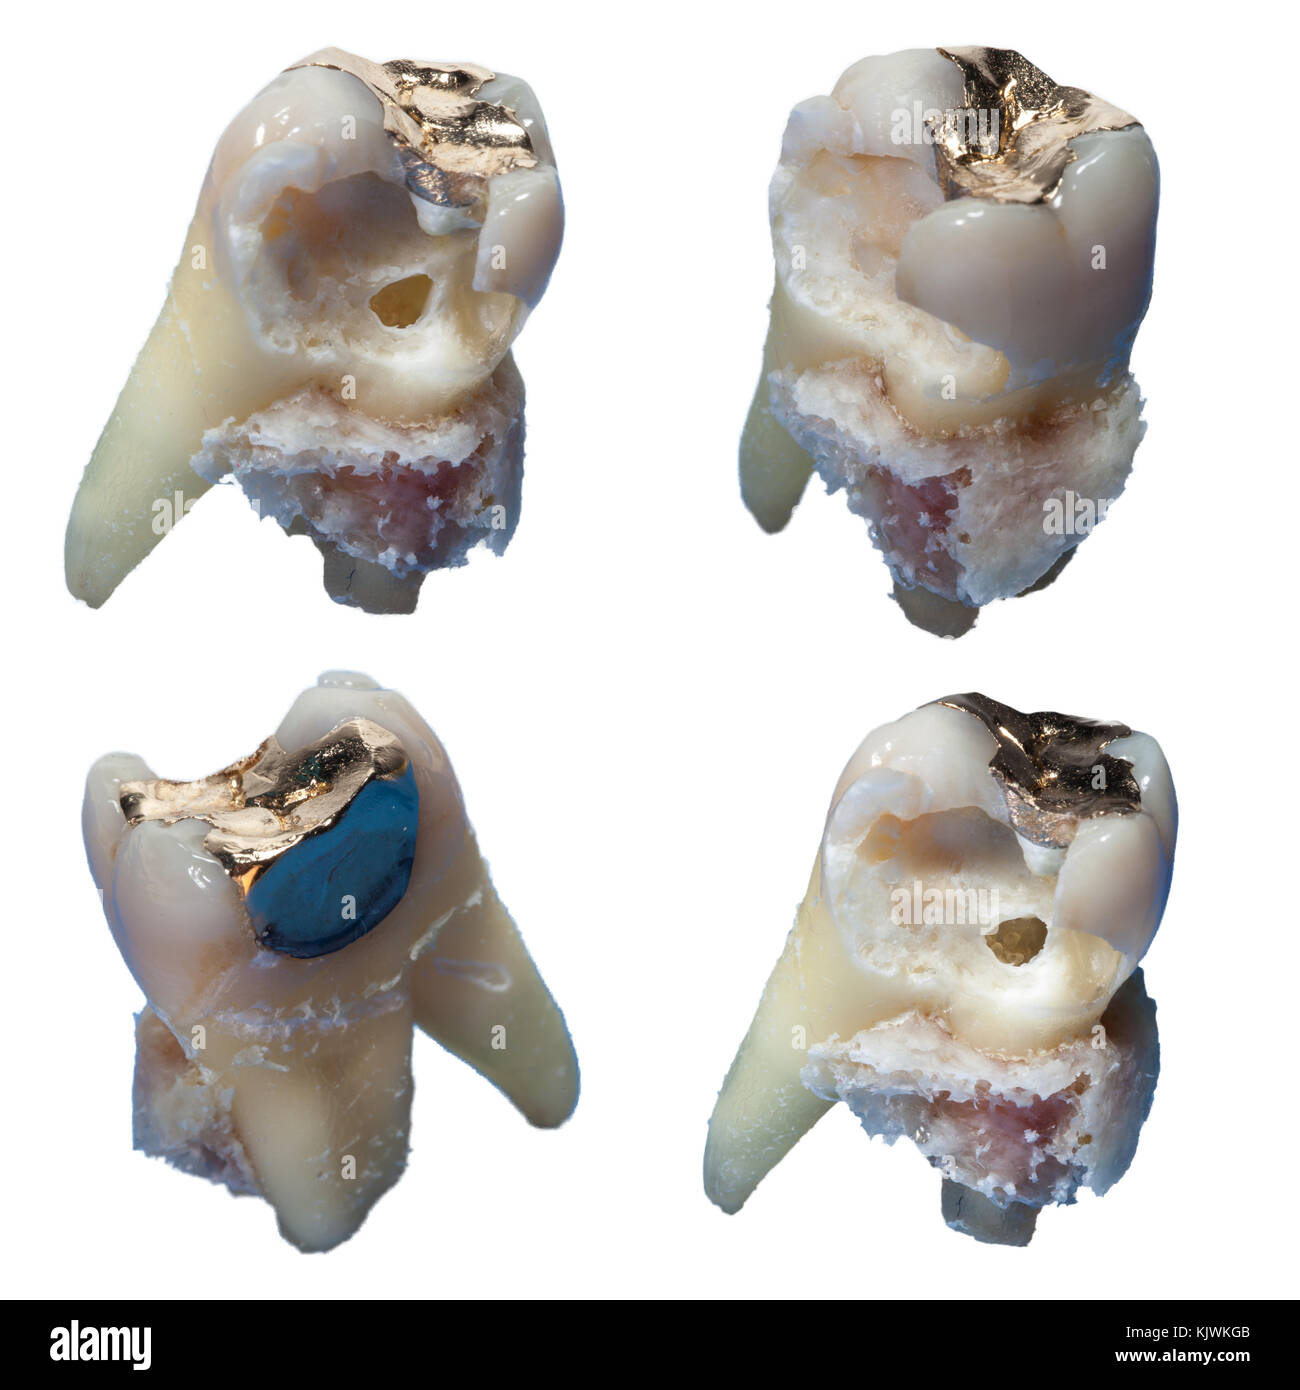 Pulled carious tooth - Stock Image